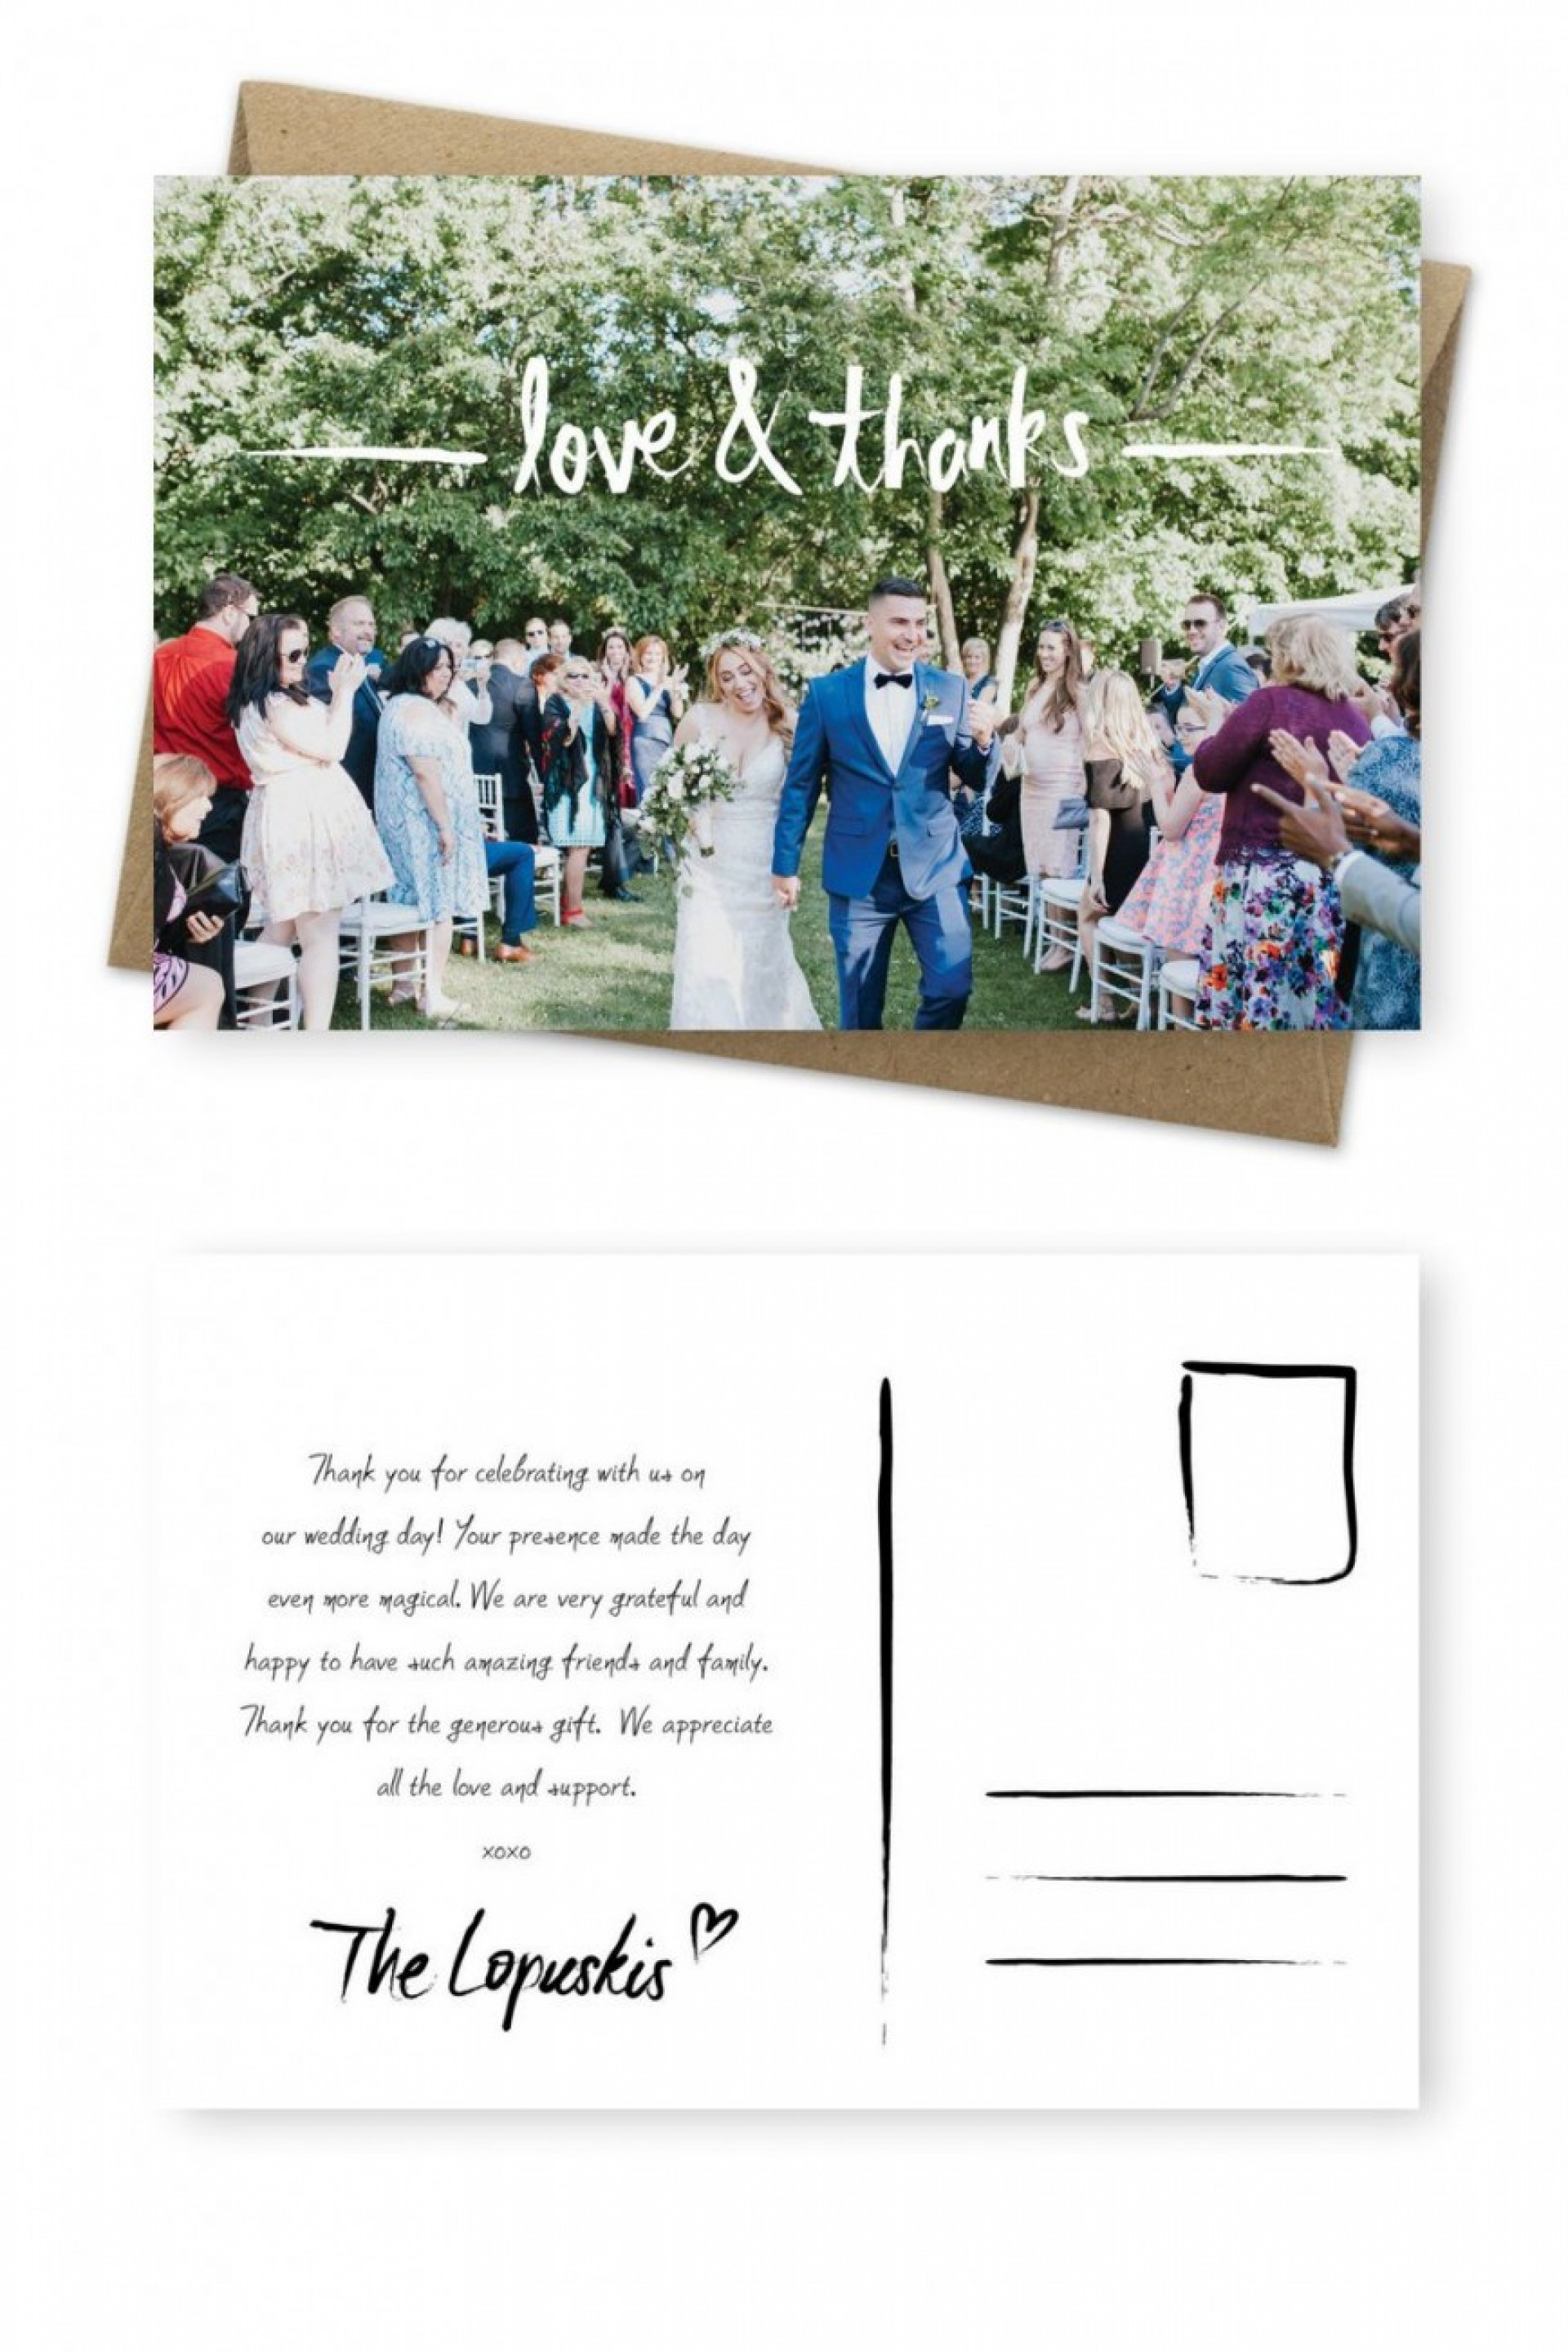 000 Unusual Thank You Card Template Wedding Idea  Free Printable Publisher1920